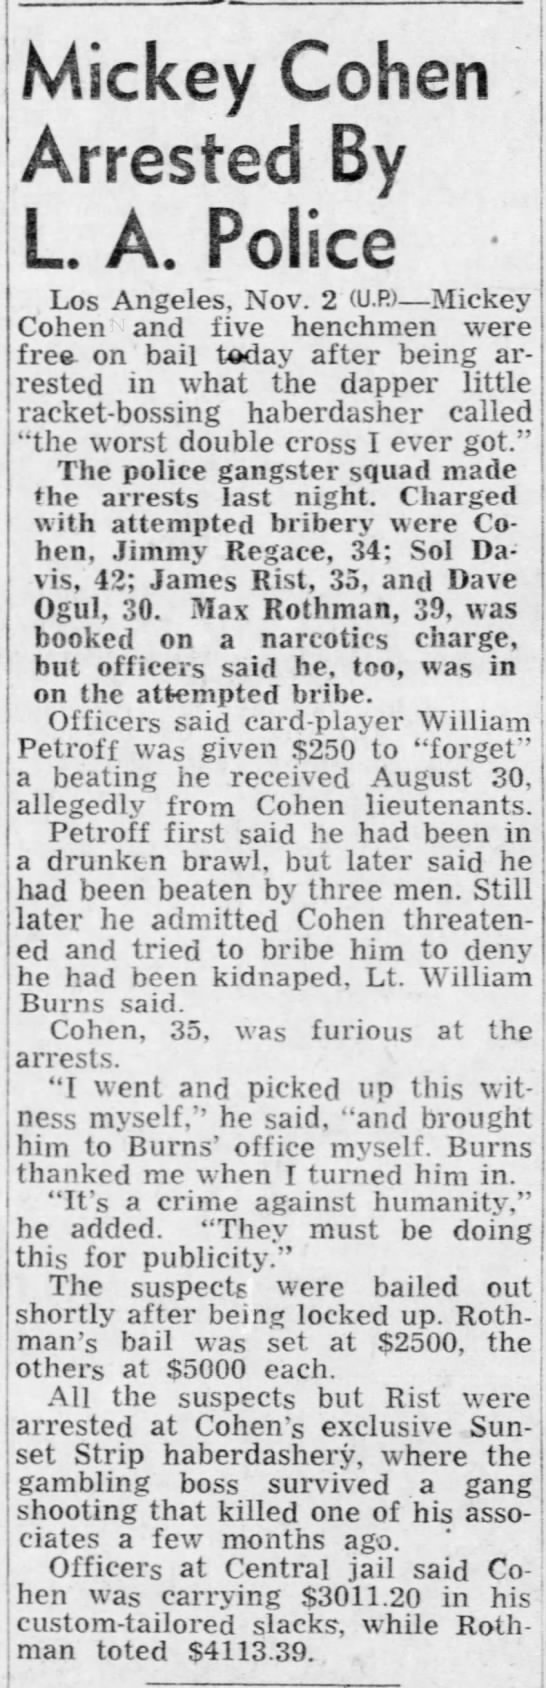 Max Rothman arrested with Mickey Cohen. - Mickey Cohen Arrested By L. A. Police Los...